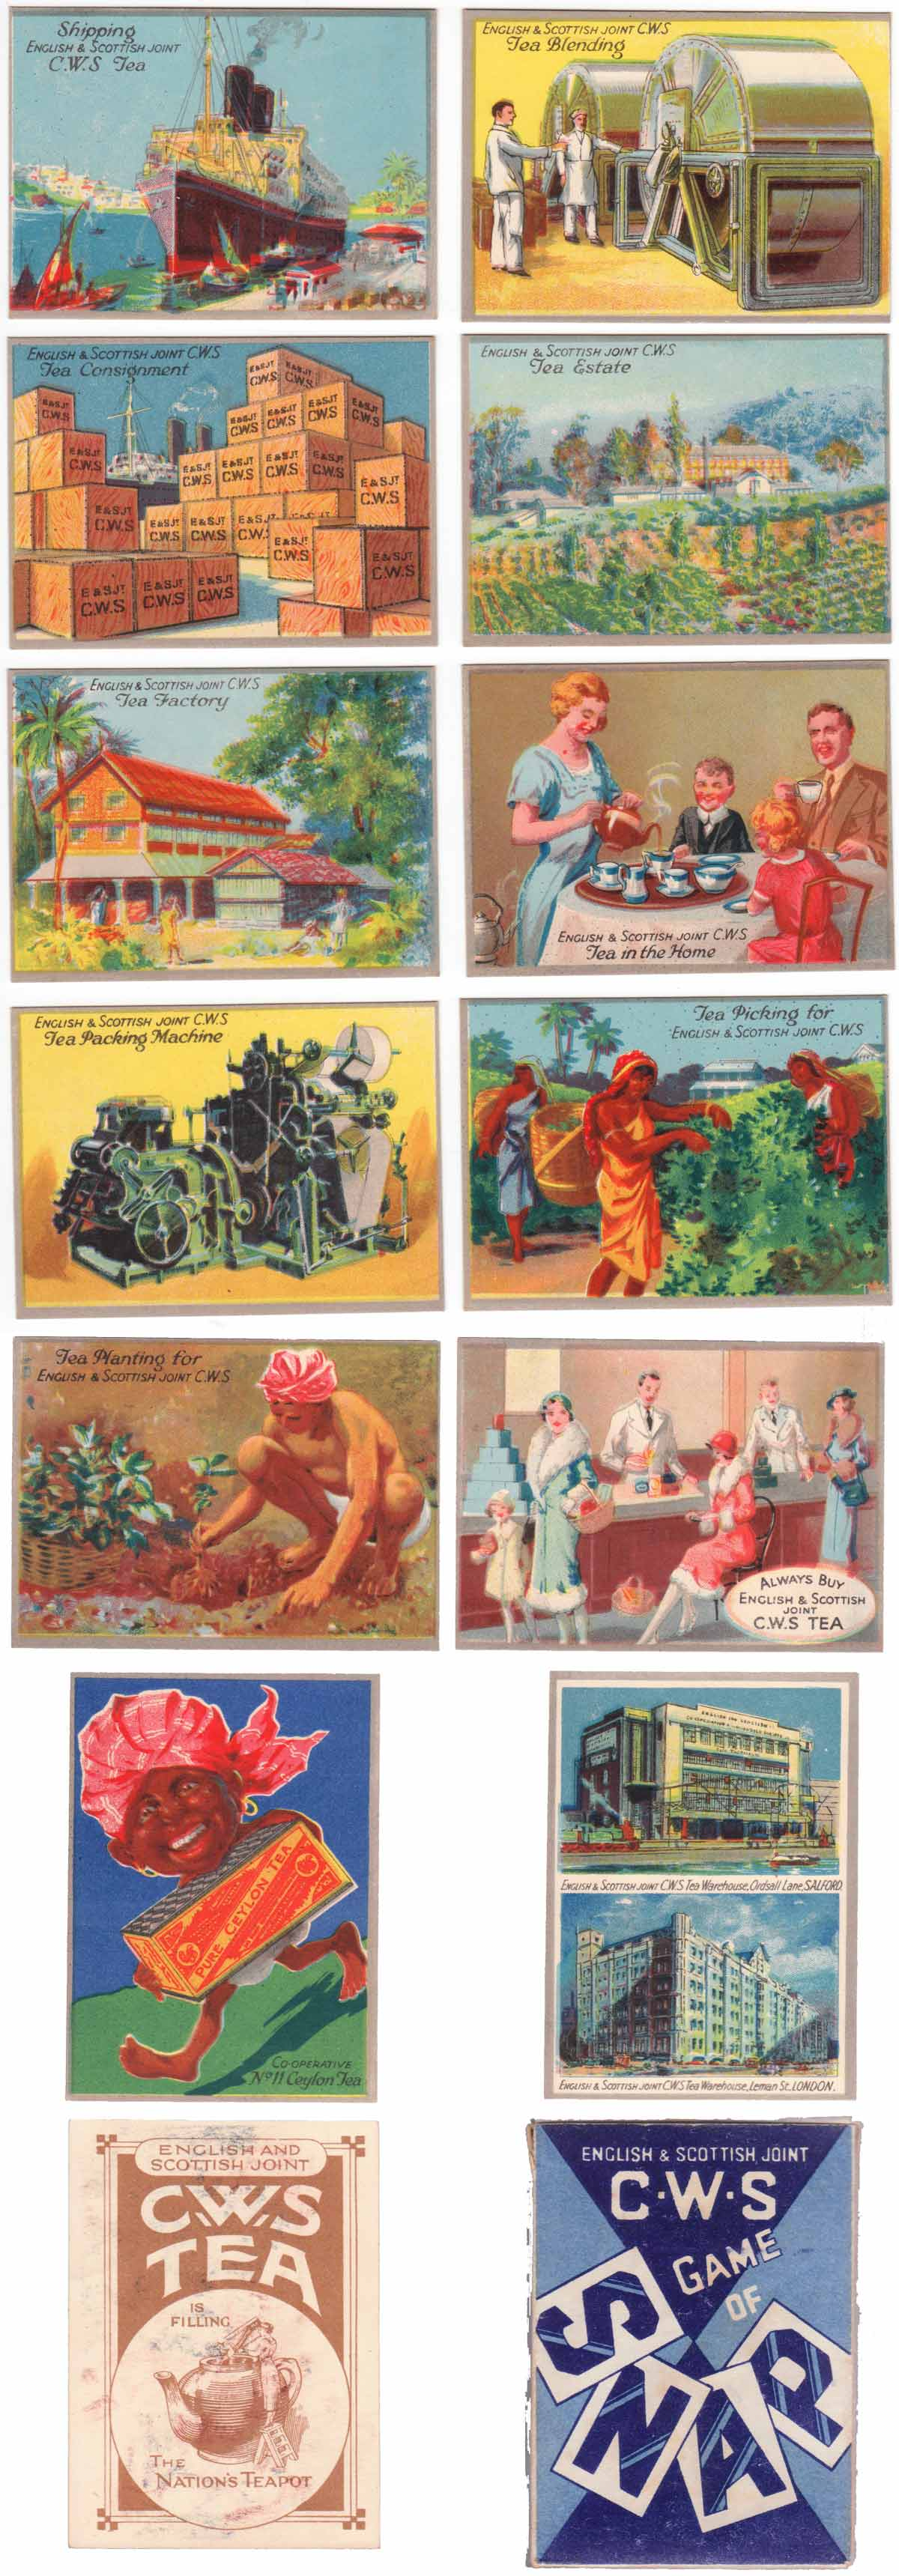 4th Series 'Game of Snap' published by the English & Scottish Joint C.W.S., 1930s